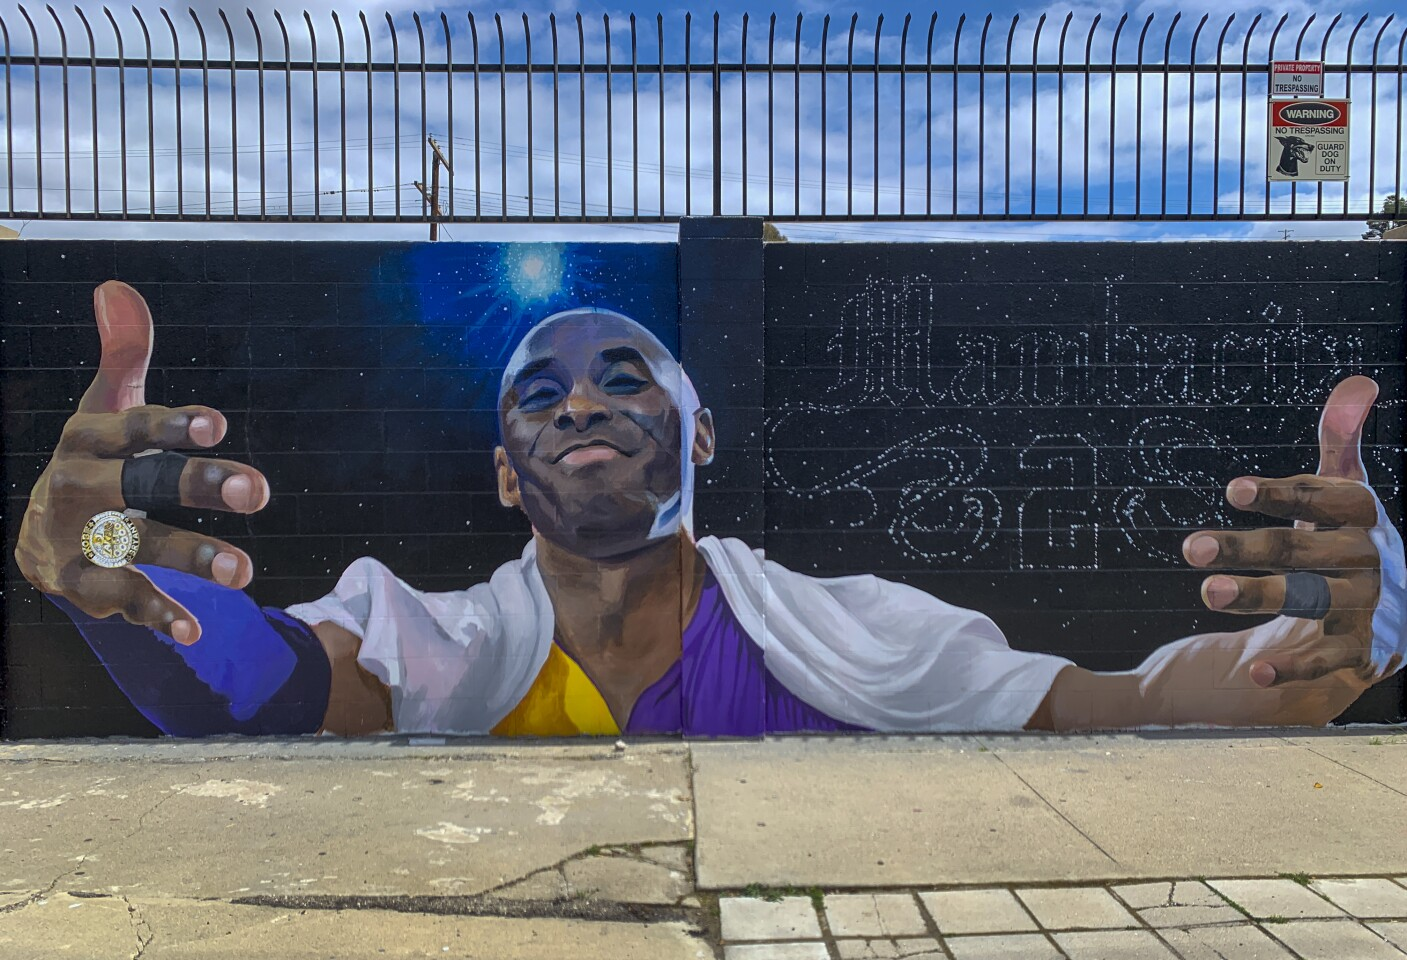 """Kobe Bryant mural """"After the Final Lakers' Game"""" by Melany Meza-Dierks, @melanymd, at 5220 Valley Blvd. in El Sereno."""